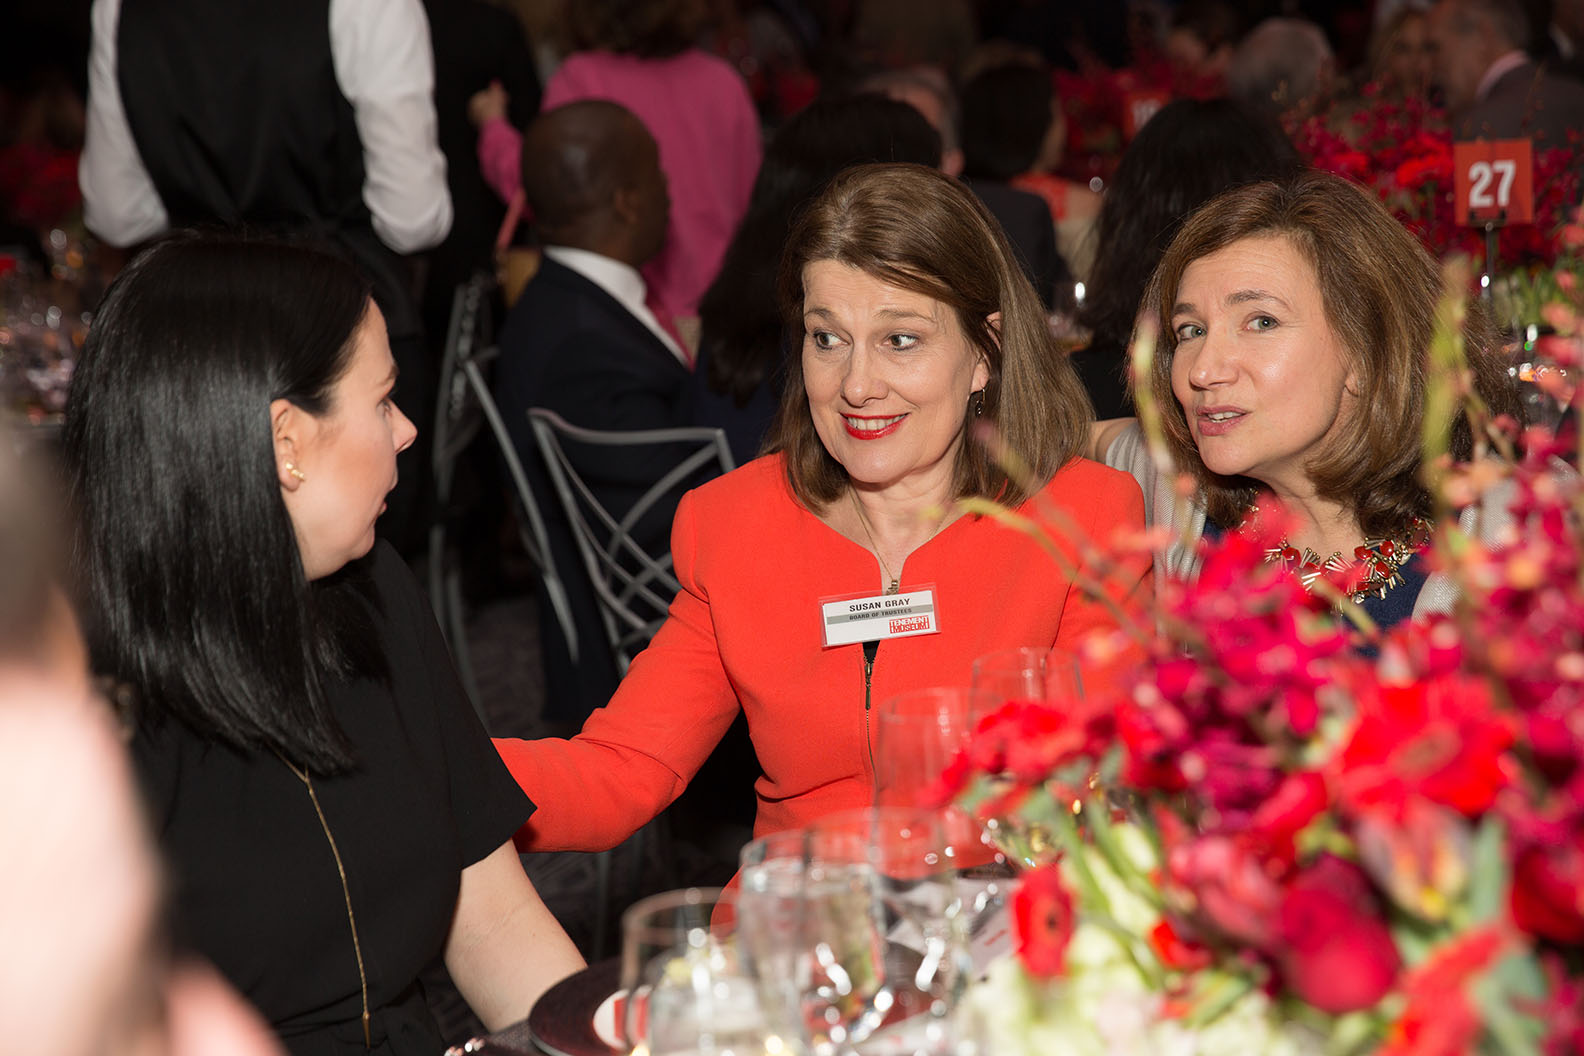 Gala guests chatting at a dinner table